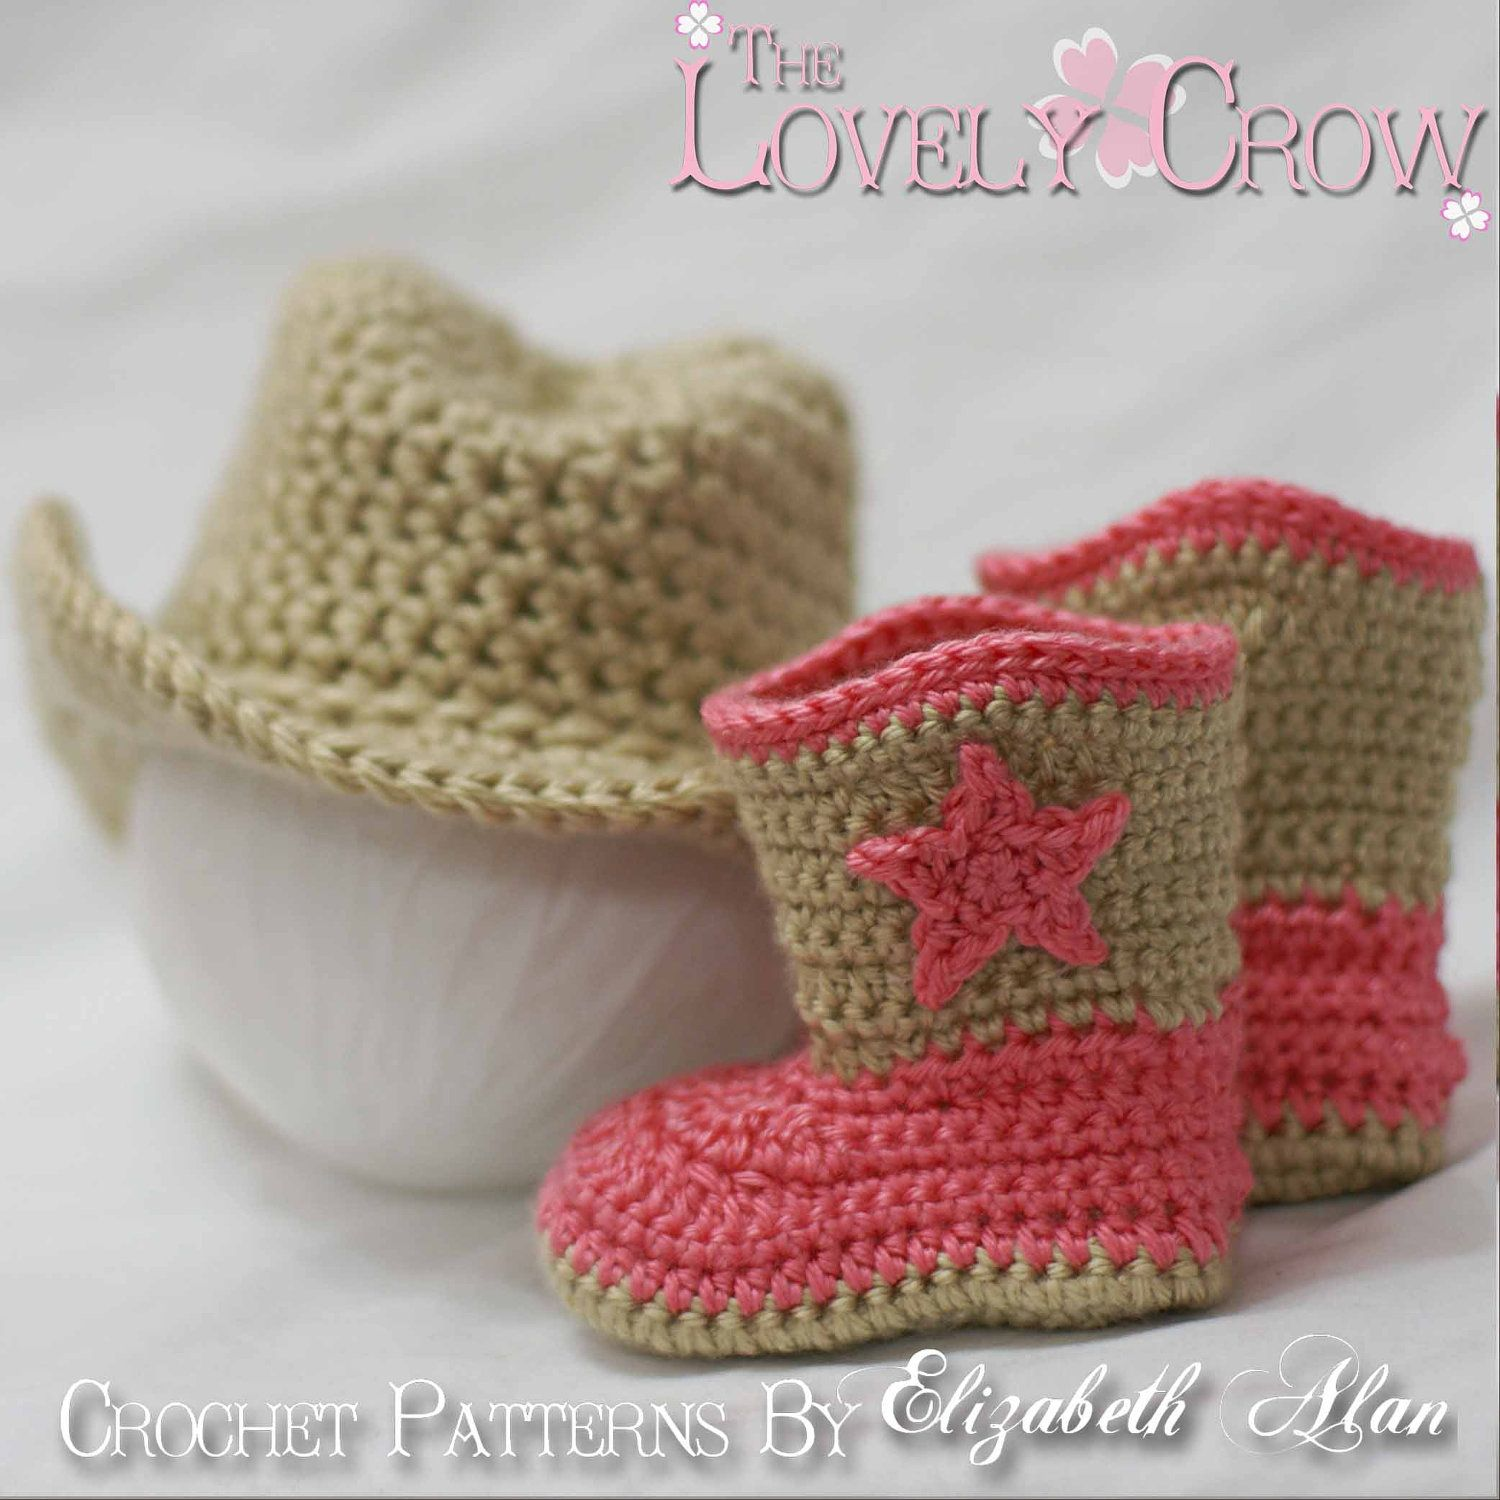 Baby Cowboy Crochet Patterns Includes Patterns For Boot Scootn